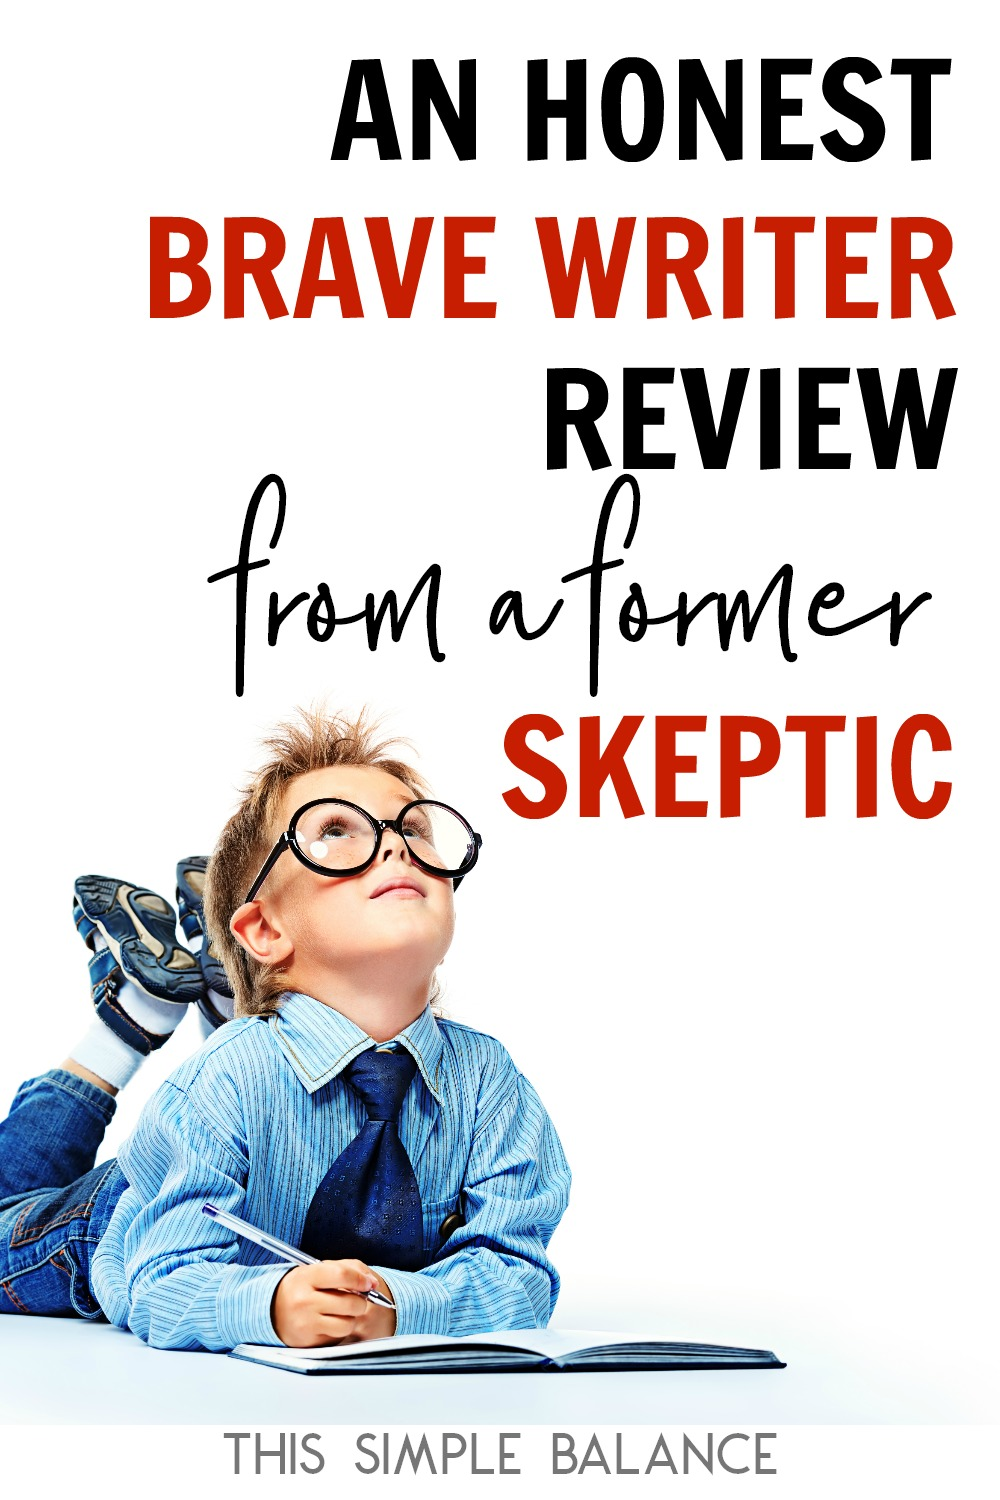 Curious about Brave Writer but confused about what this unique homeschool language arts curriculum actually IS? I was, too. Check out this honest Brave Writer review, from a former skeptic turned Brave Writer enthusiast!